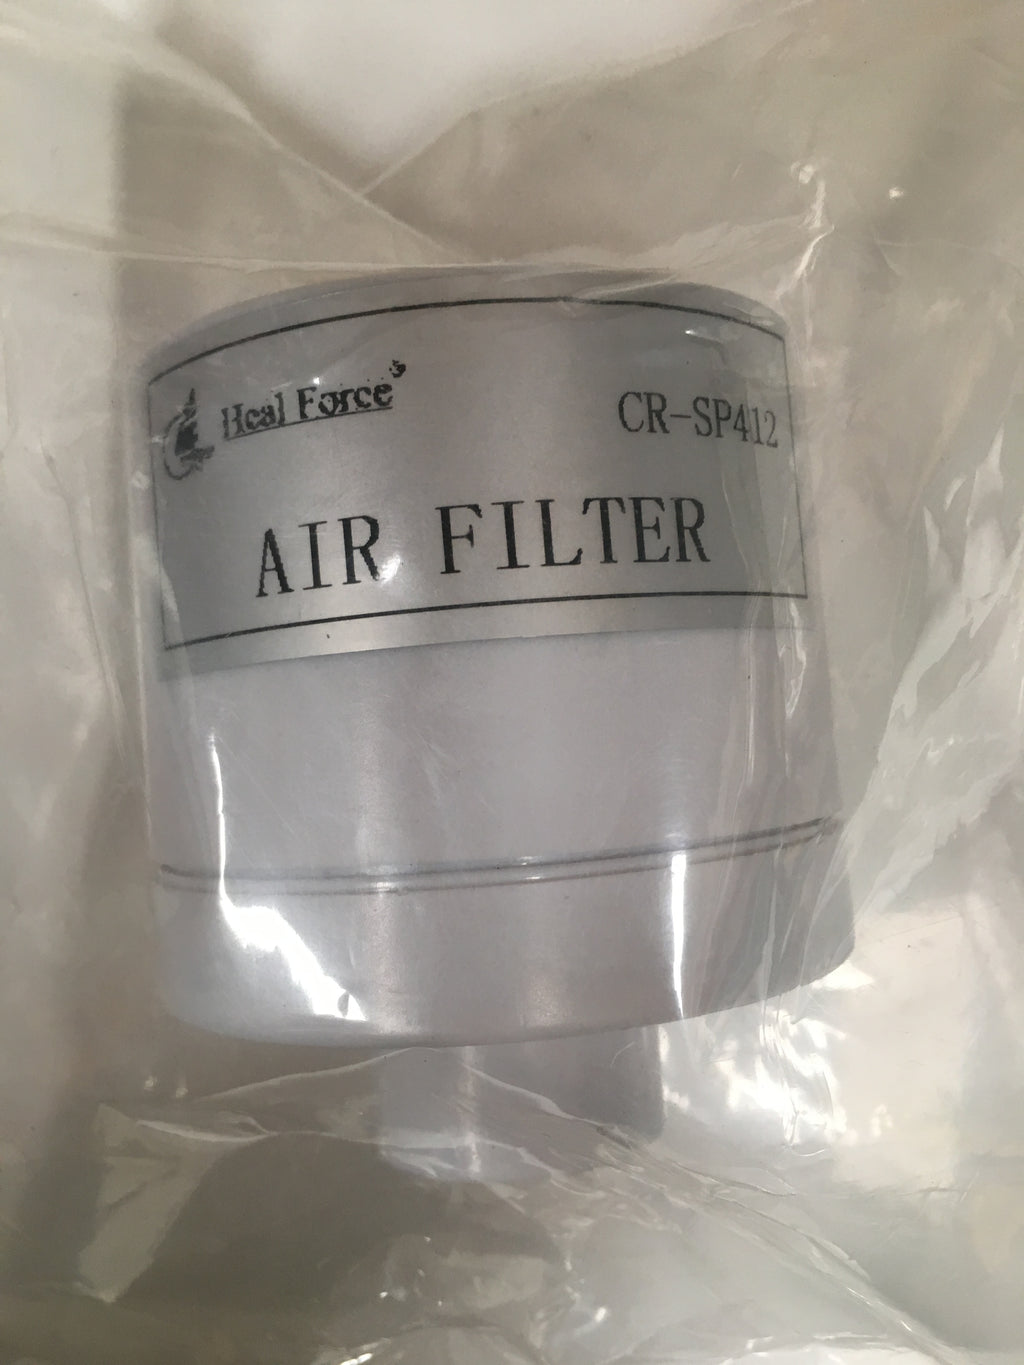 Heal Force CR-SP412 Air Filter